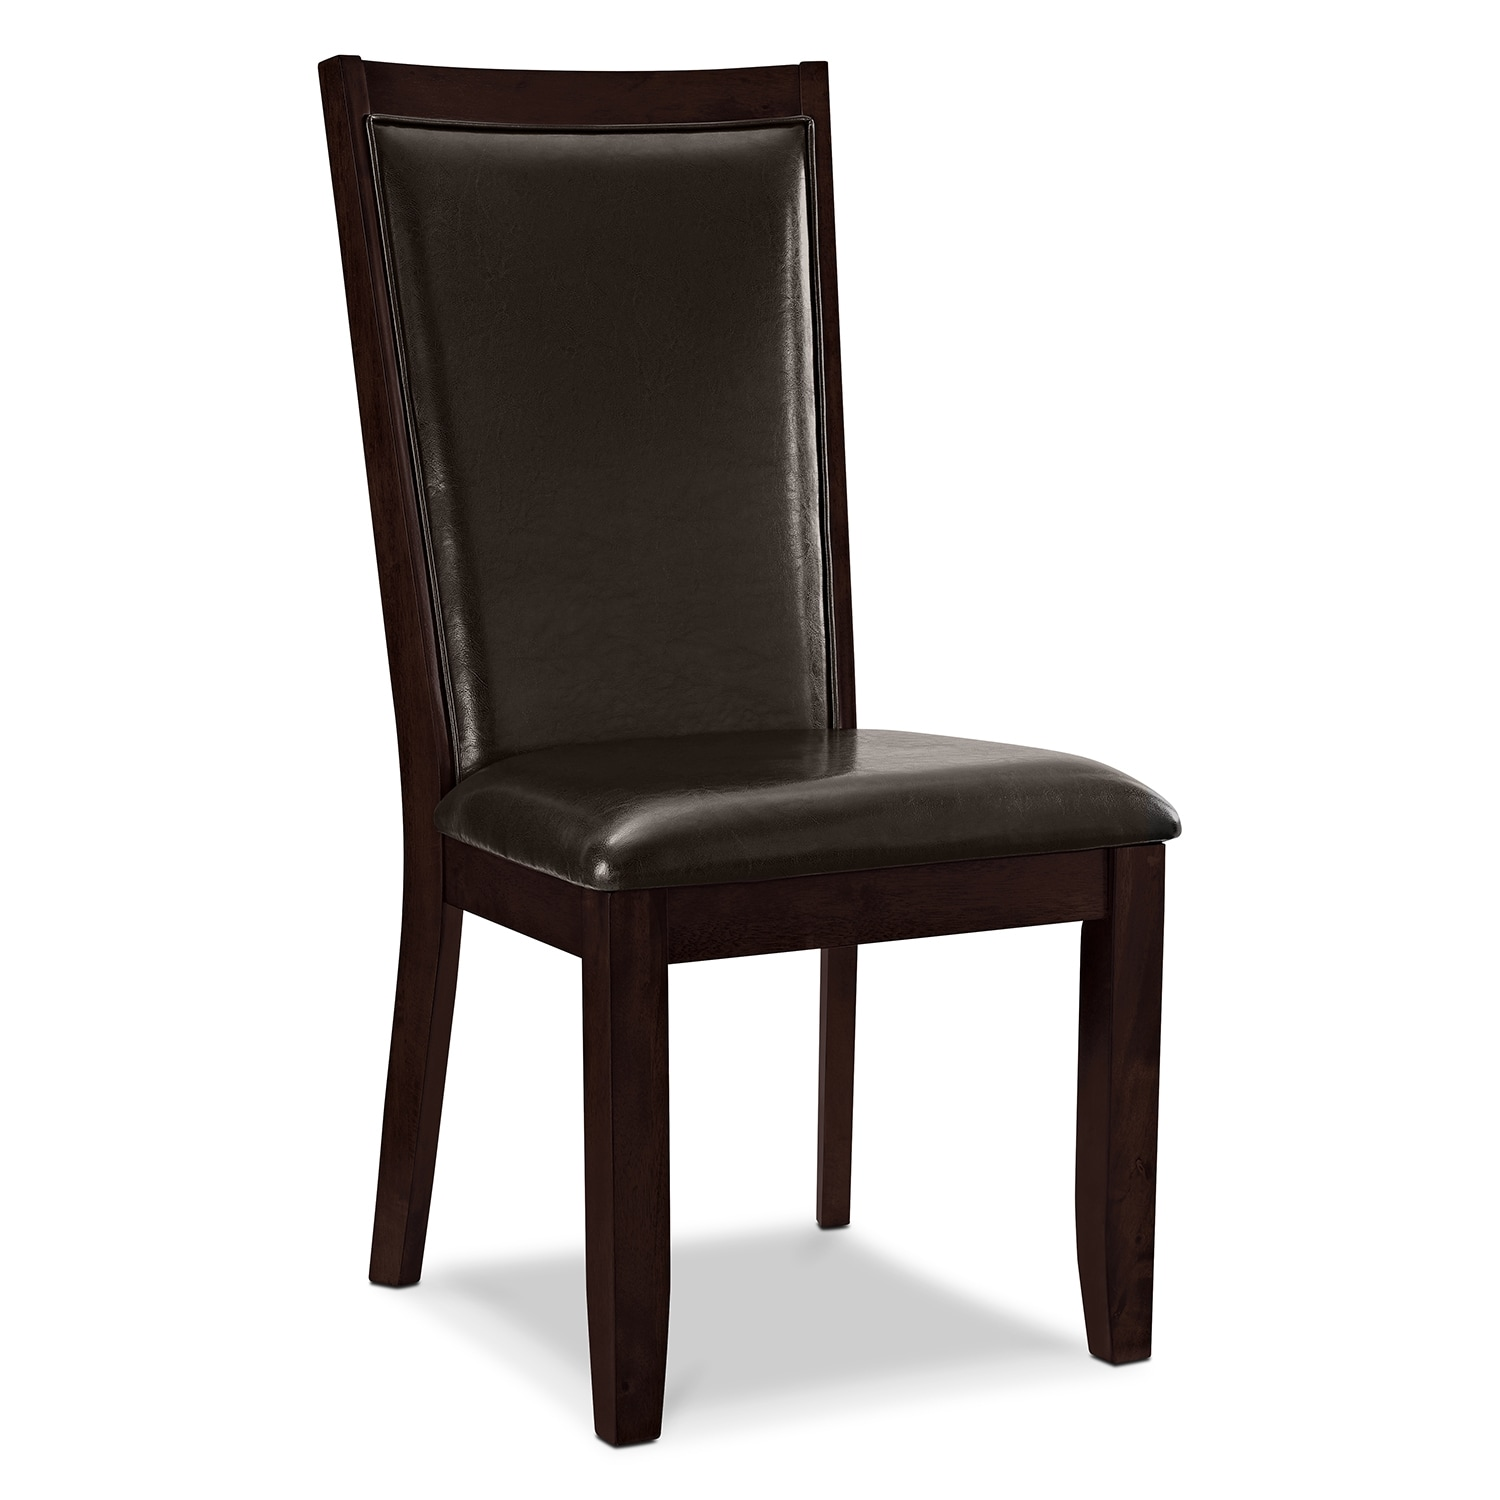 Dining Room Furniture - Costa Brown Chair